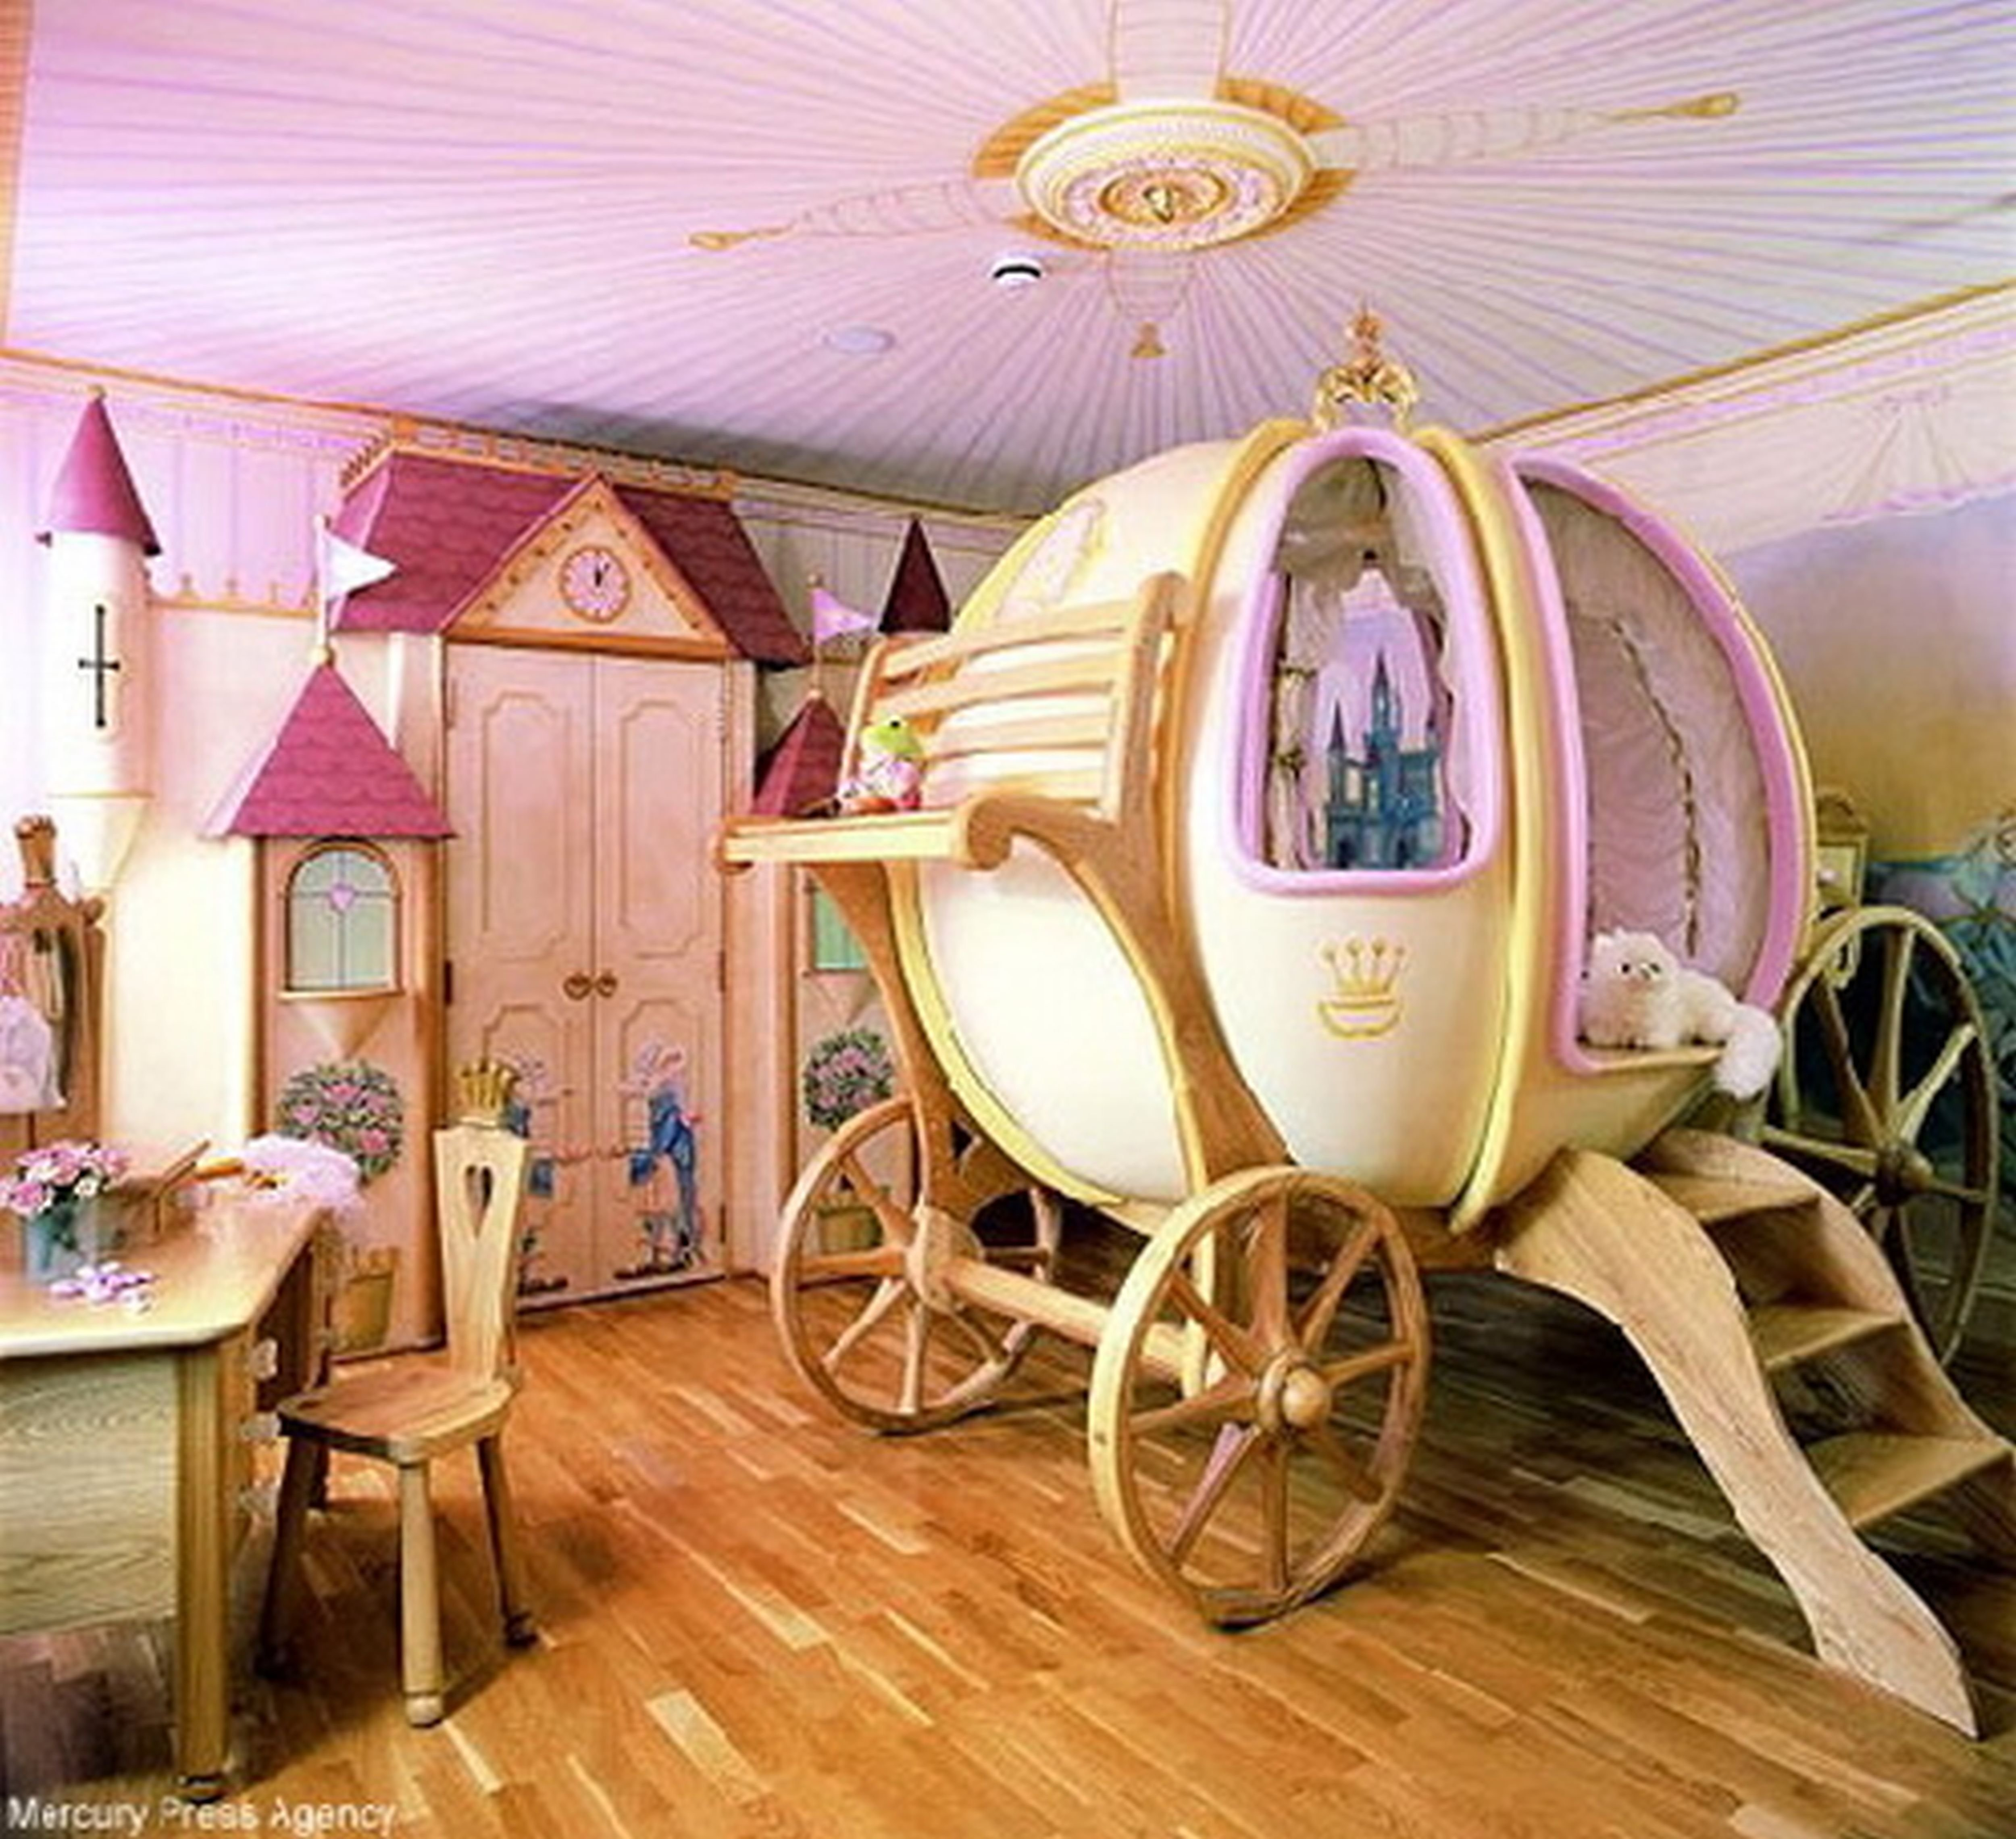 Best 15 Disney Inspired Rooms That Will Make You Want To Redo With Pictures